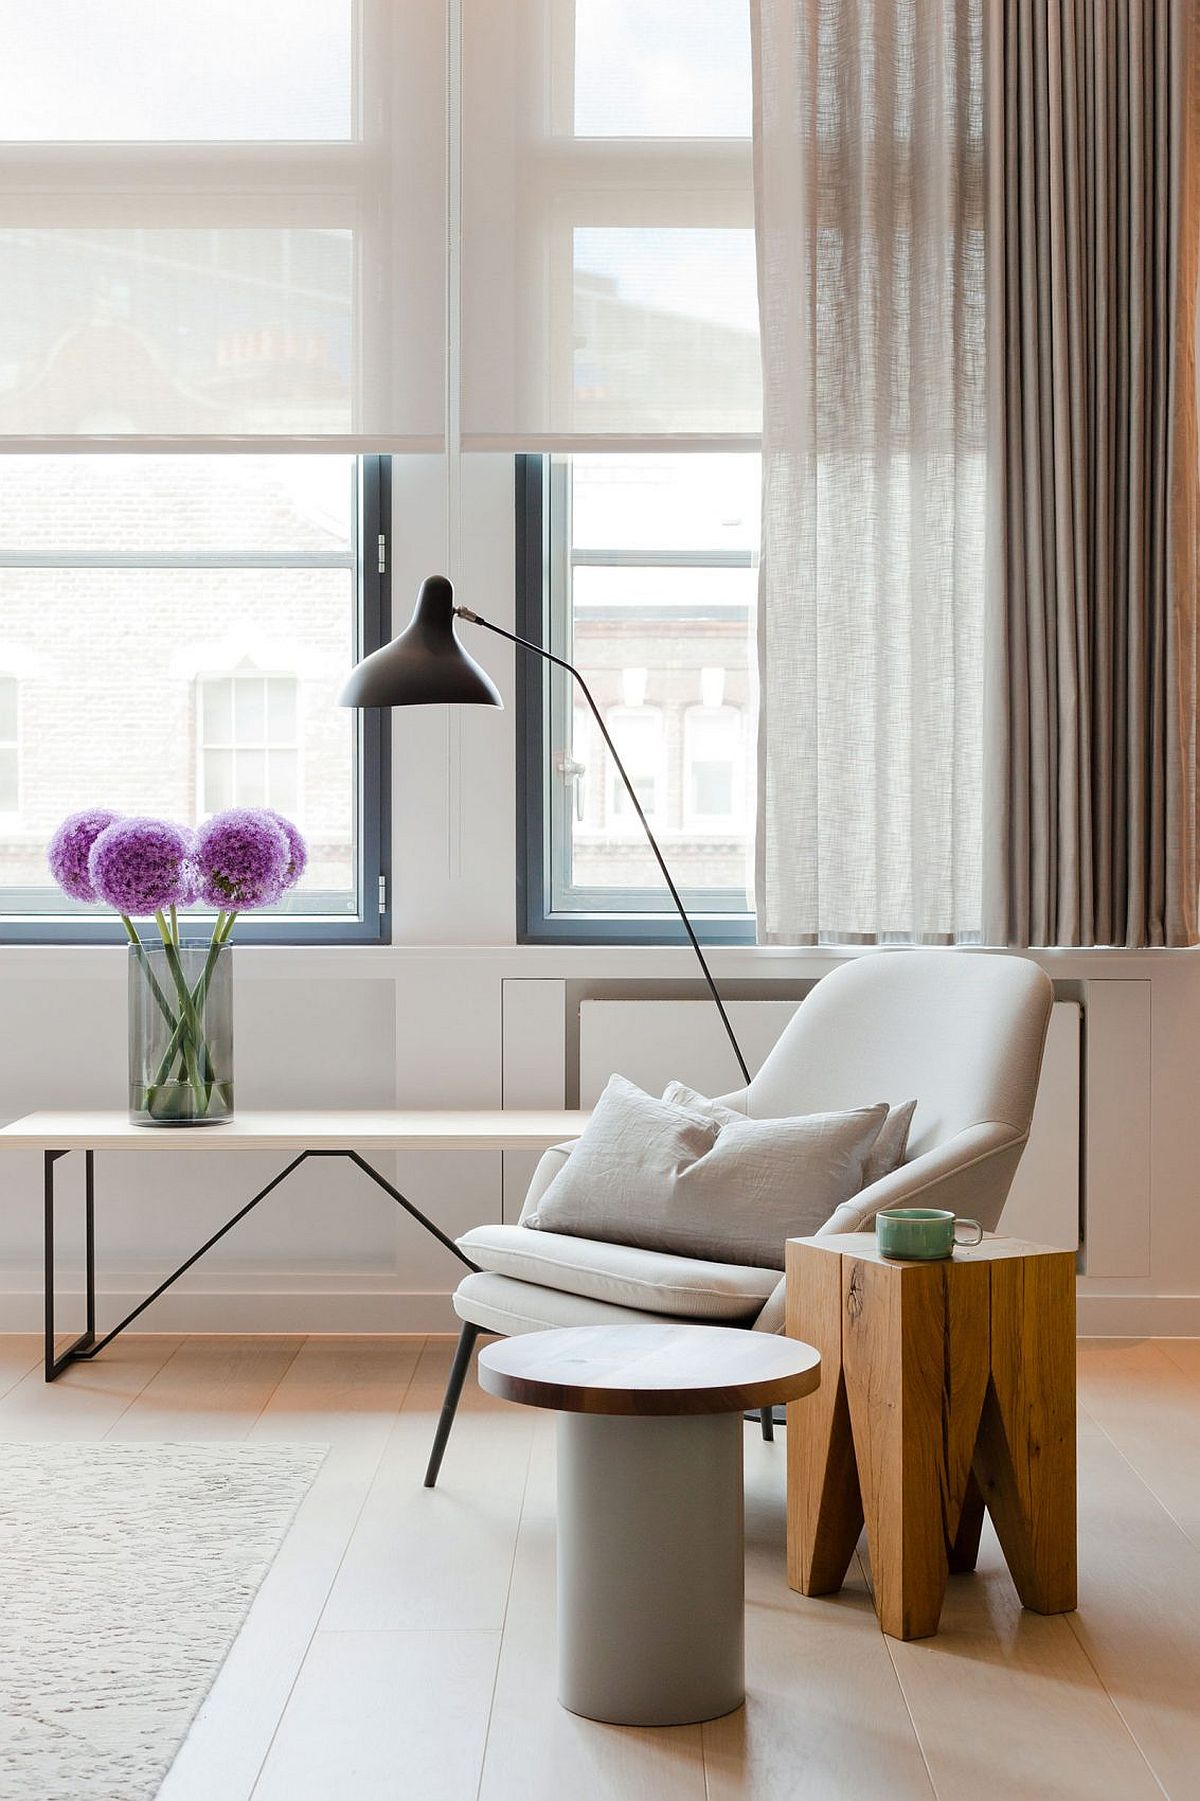 Comfy chair in white and wooden side table for the elegant living room of London penthouse